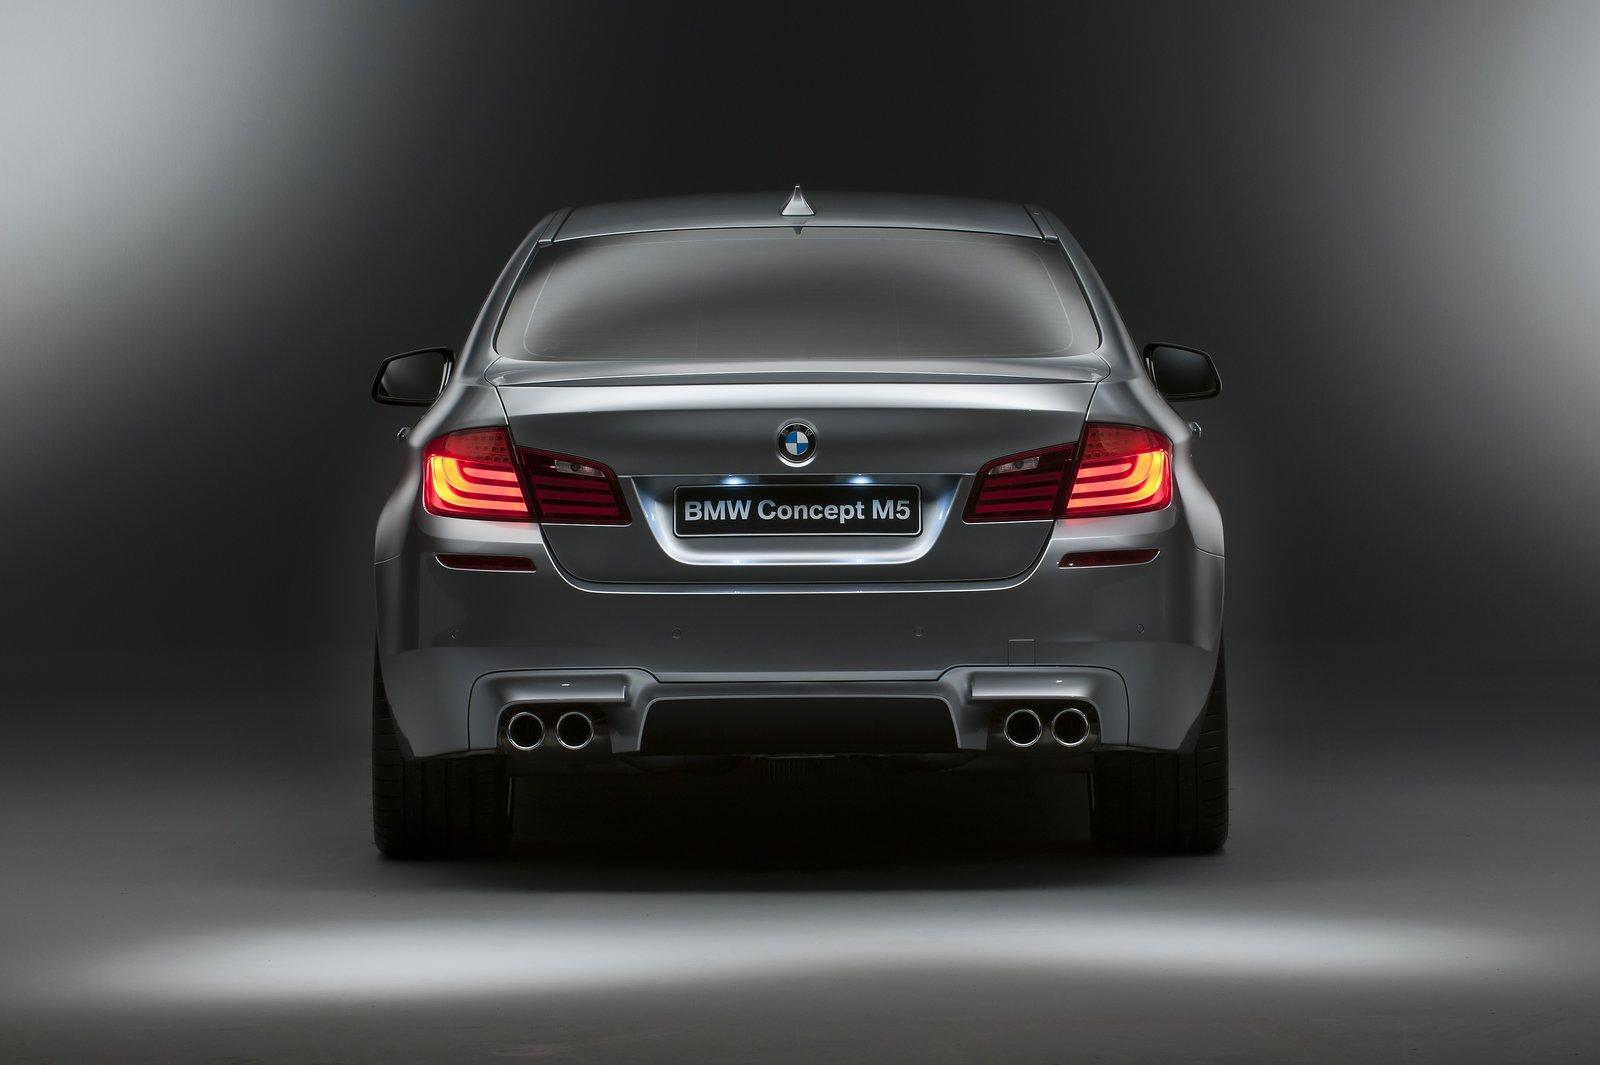 2012 BMW M5 Concept Review - Top Speed